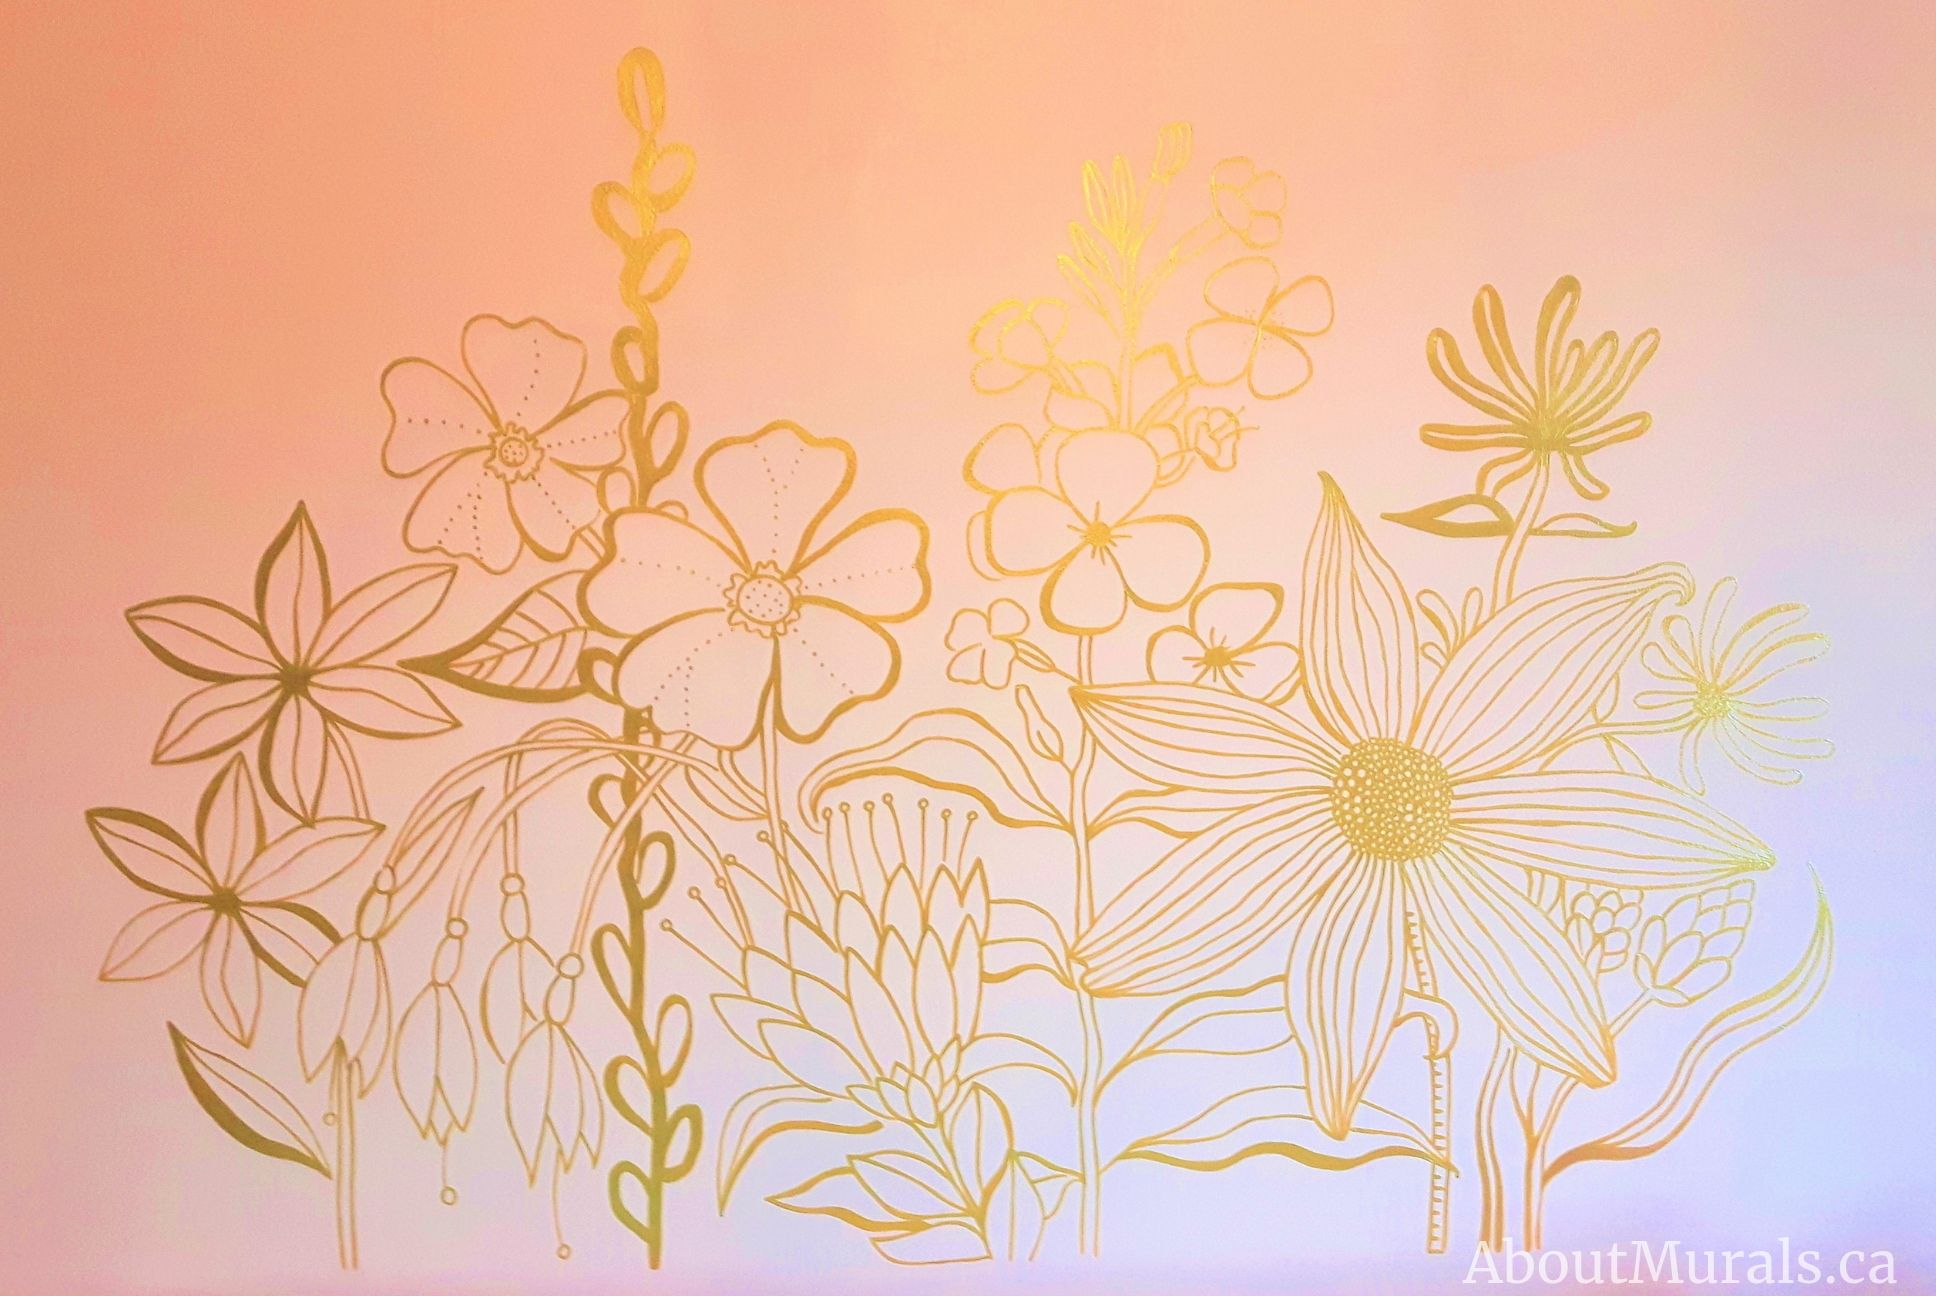 Gold wildflowers painted on a pink wall by Adrienne of AboutMurals.ca